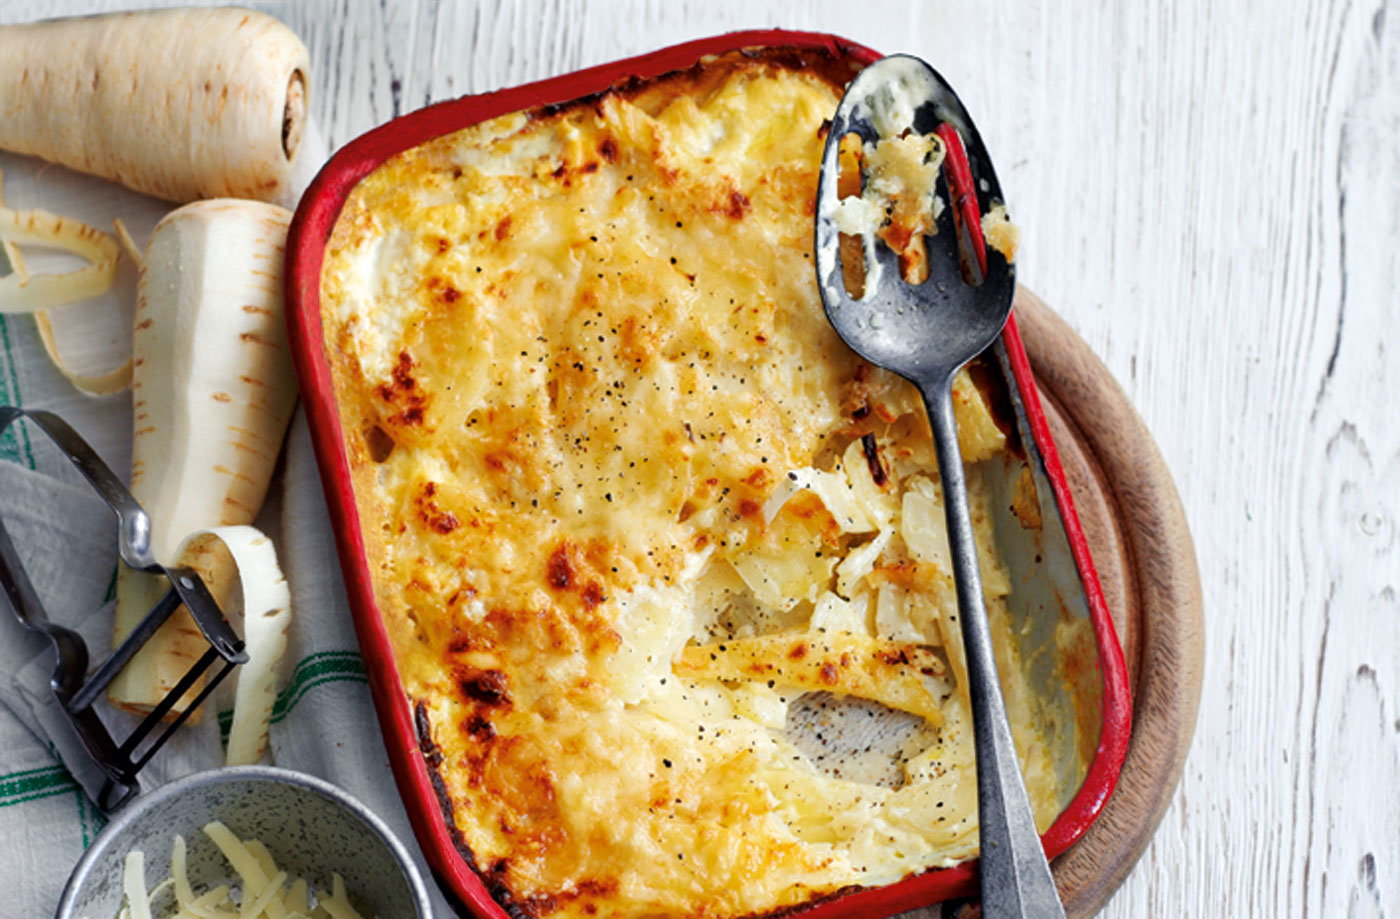 Parsnip and potato gratin recipe